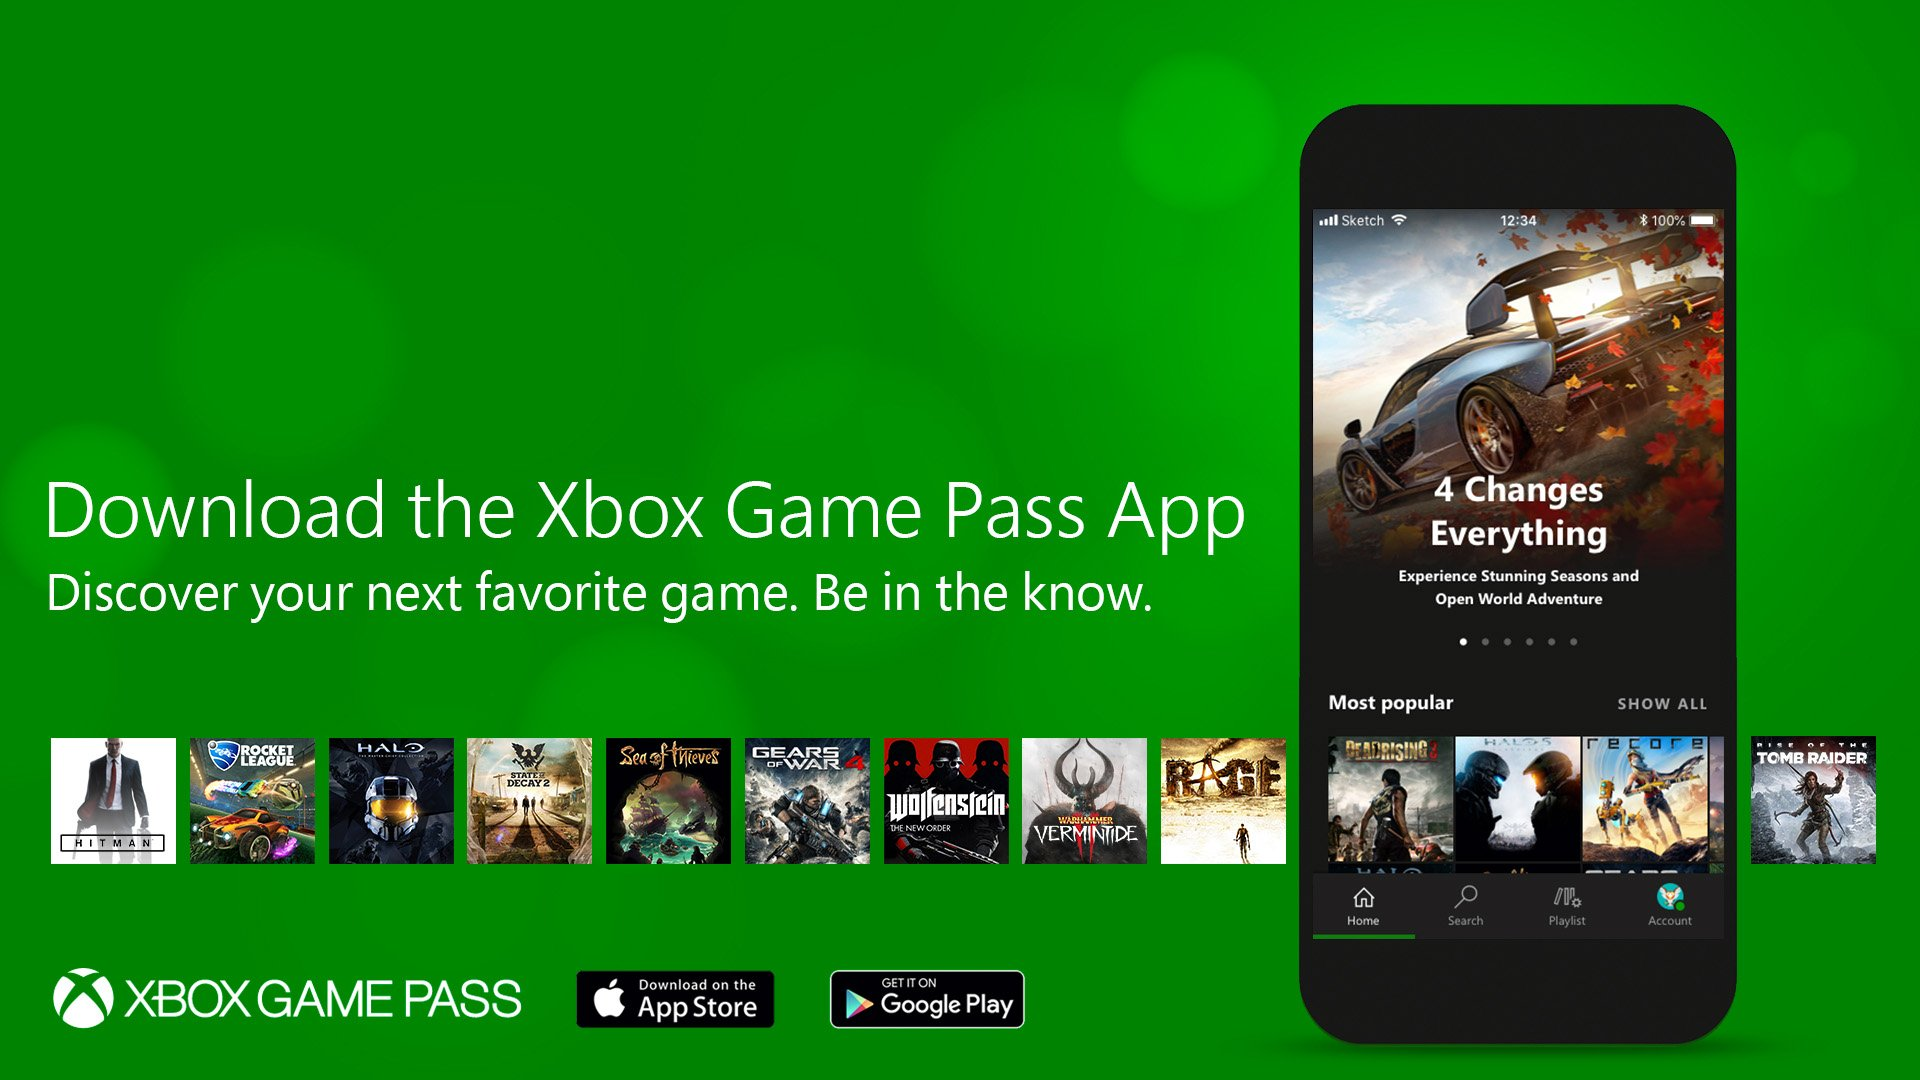 Xbox Game Pass App available on smartphones